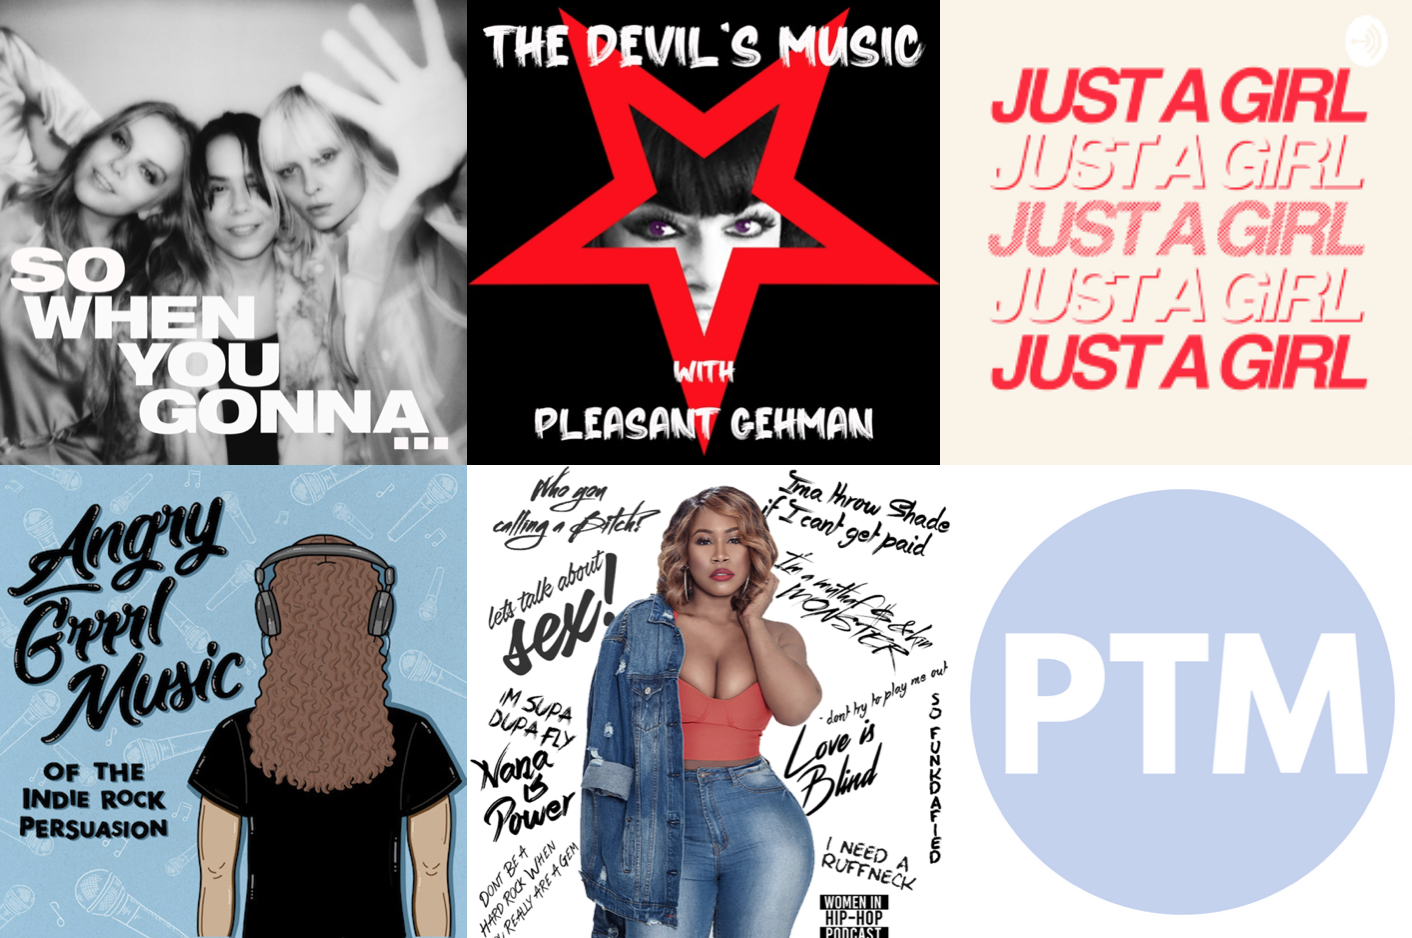 6 music podcasts hosted by women that you should listen to